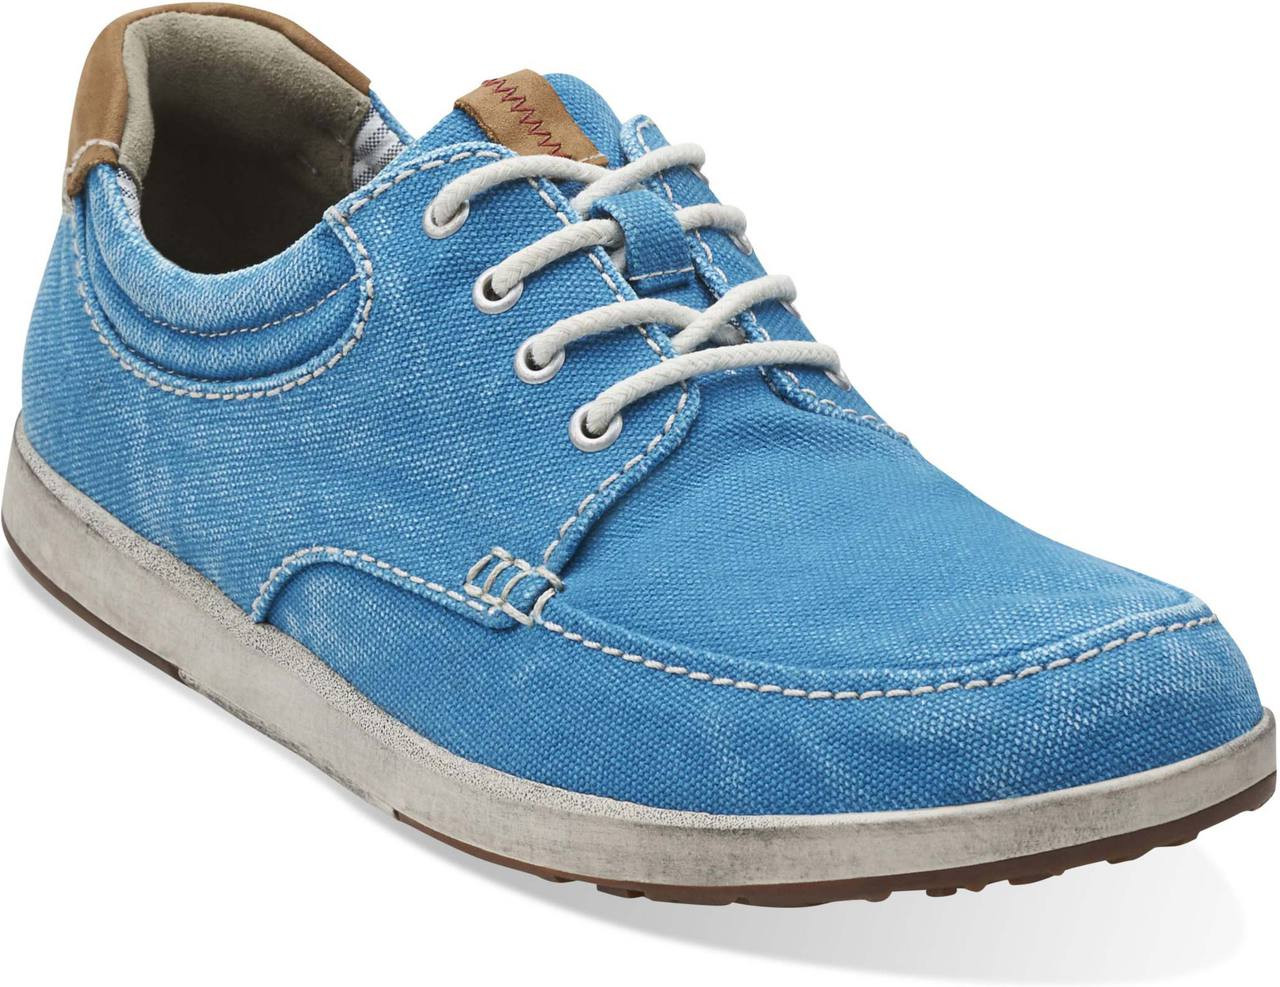 Norwin Free amp; Shipping Clarks Returns Vibe Sneakers Men's tStwF